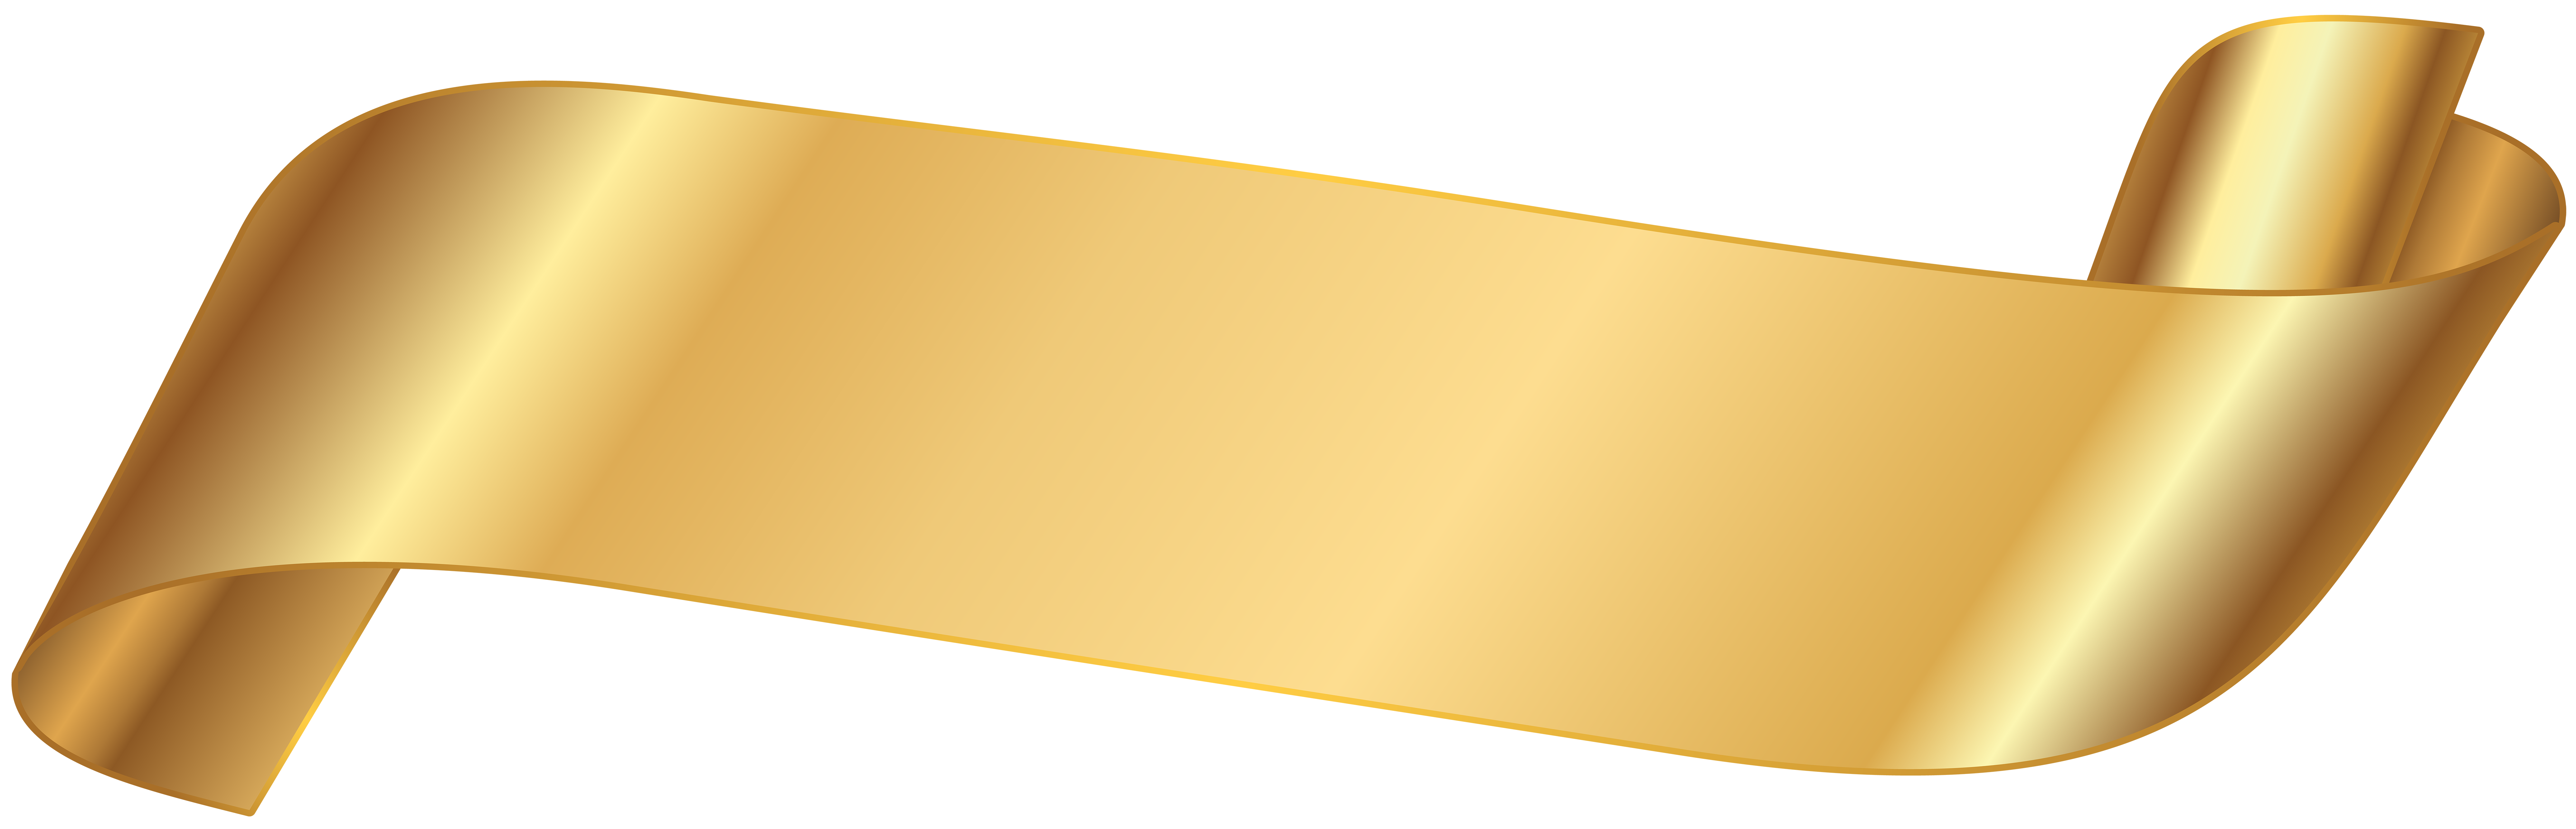 Gold Ribbon Banner Png Free Gold Ribbon Banner Png Transparent Images 107307 Pngio